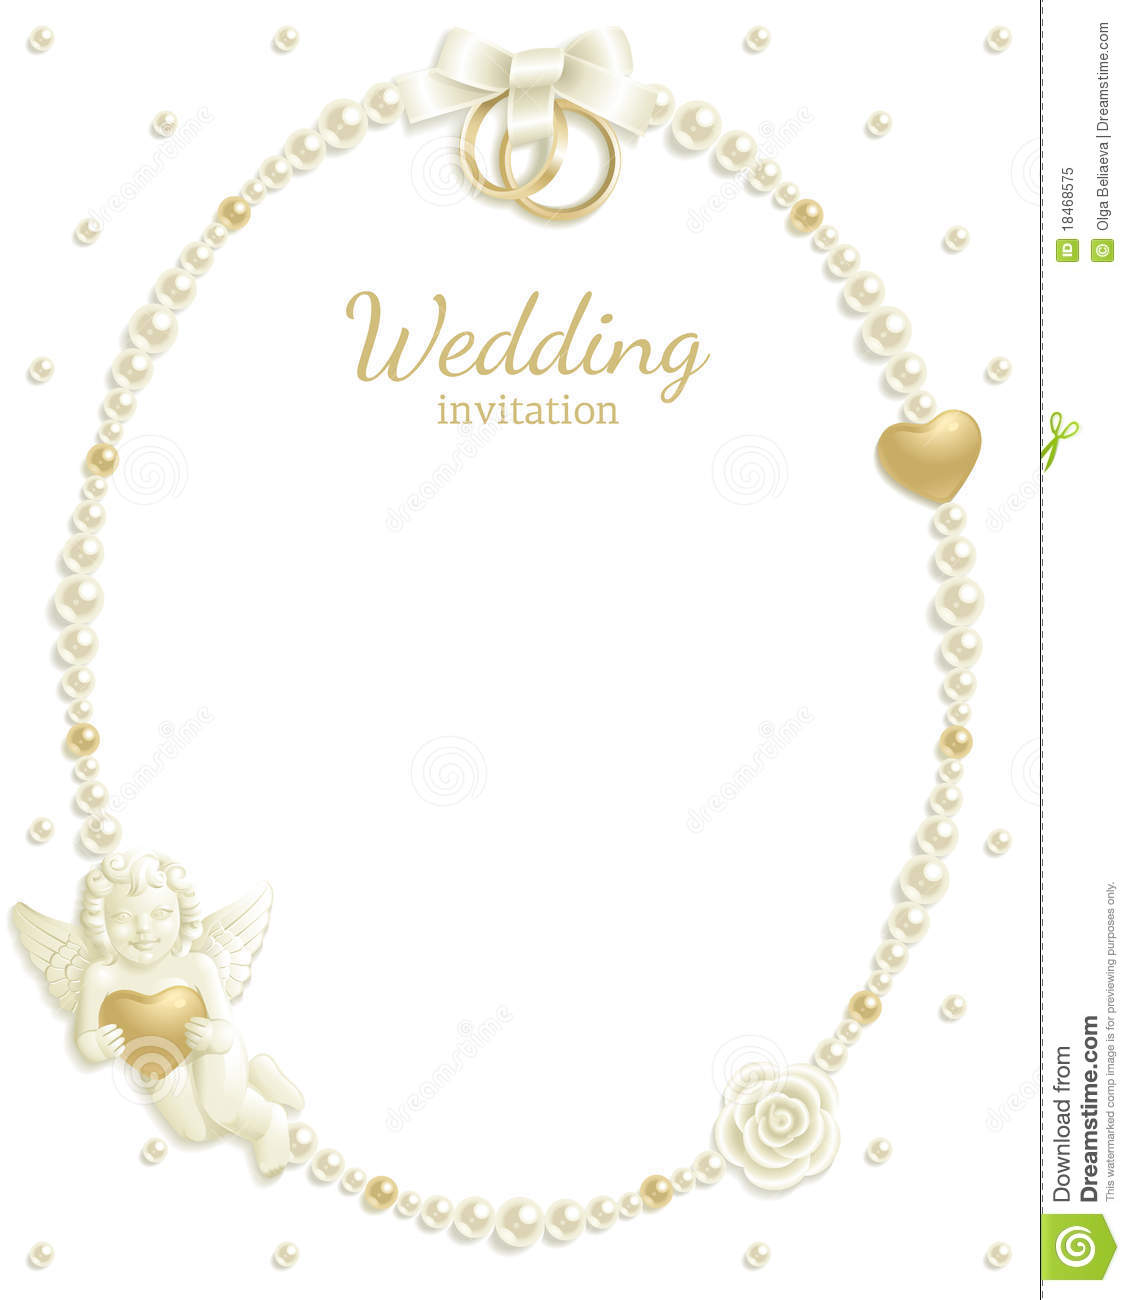 Wedding jewel frame stock vector. Illustration of cherob - 18468575